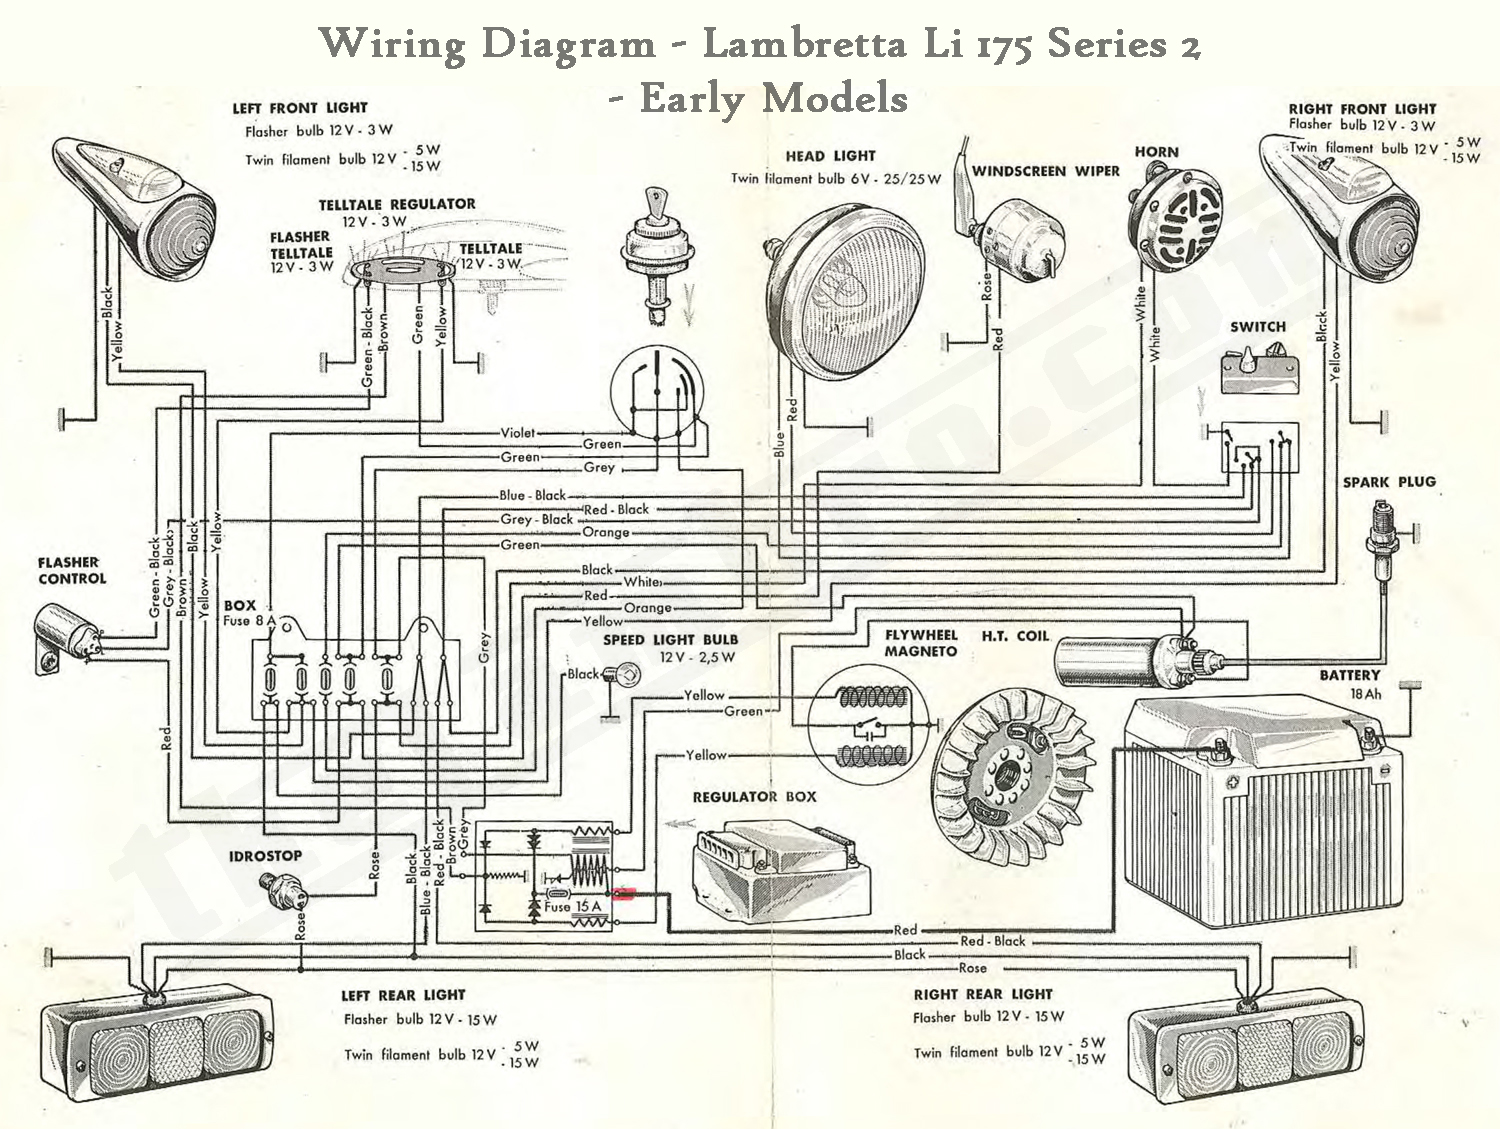 wiring diagram _series2_early_175 thelambro com electrics lambretta wiring loom diagram at bakdesigns.co